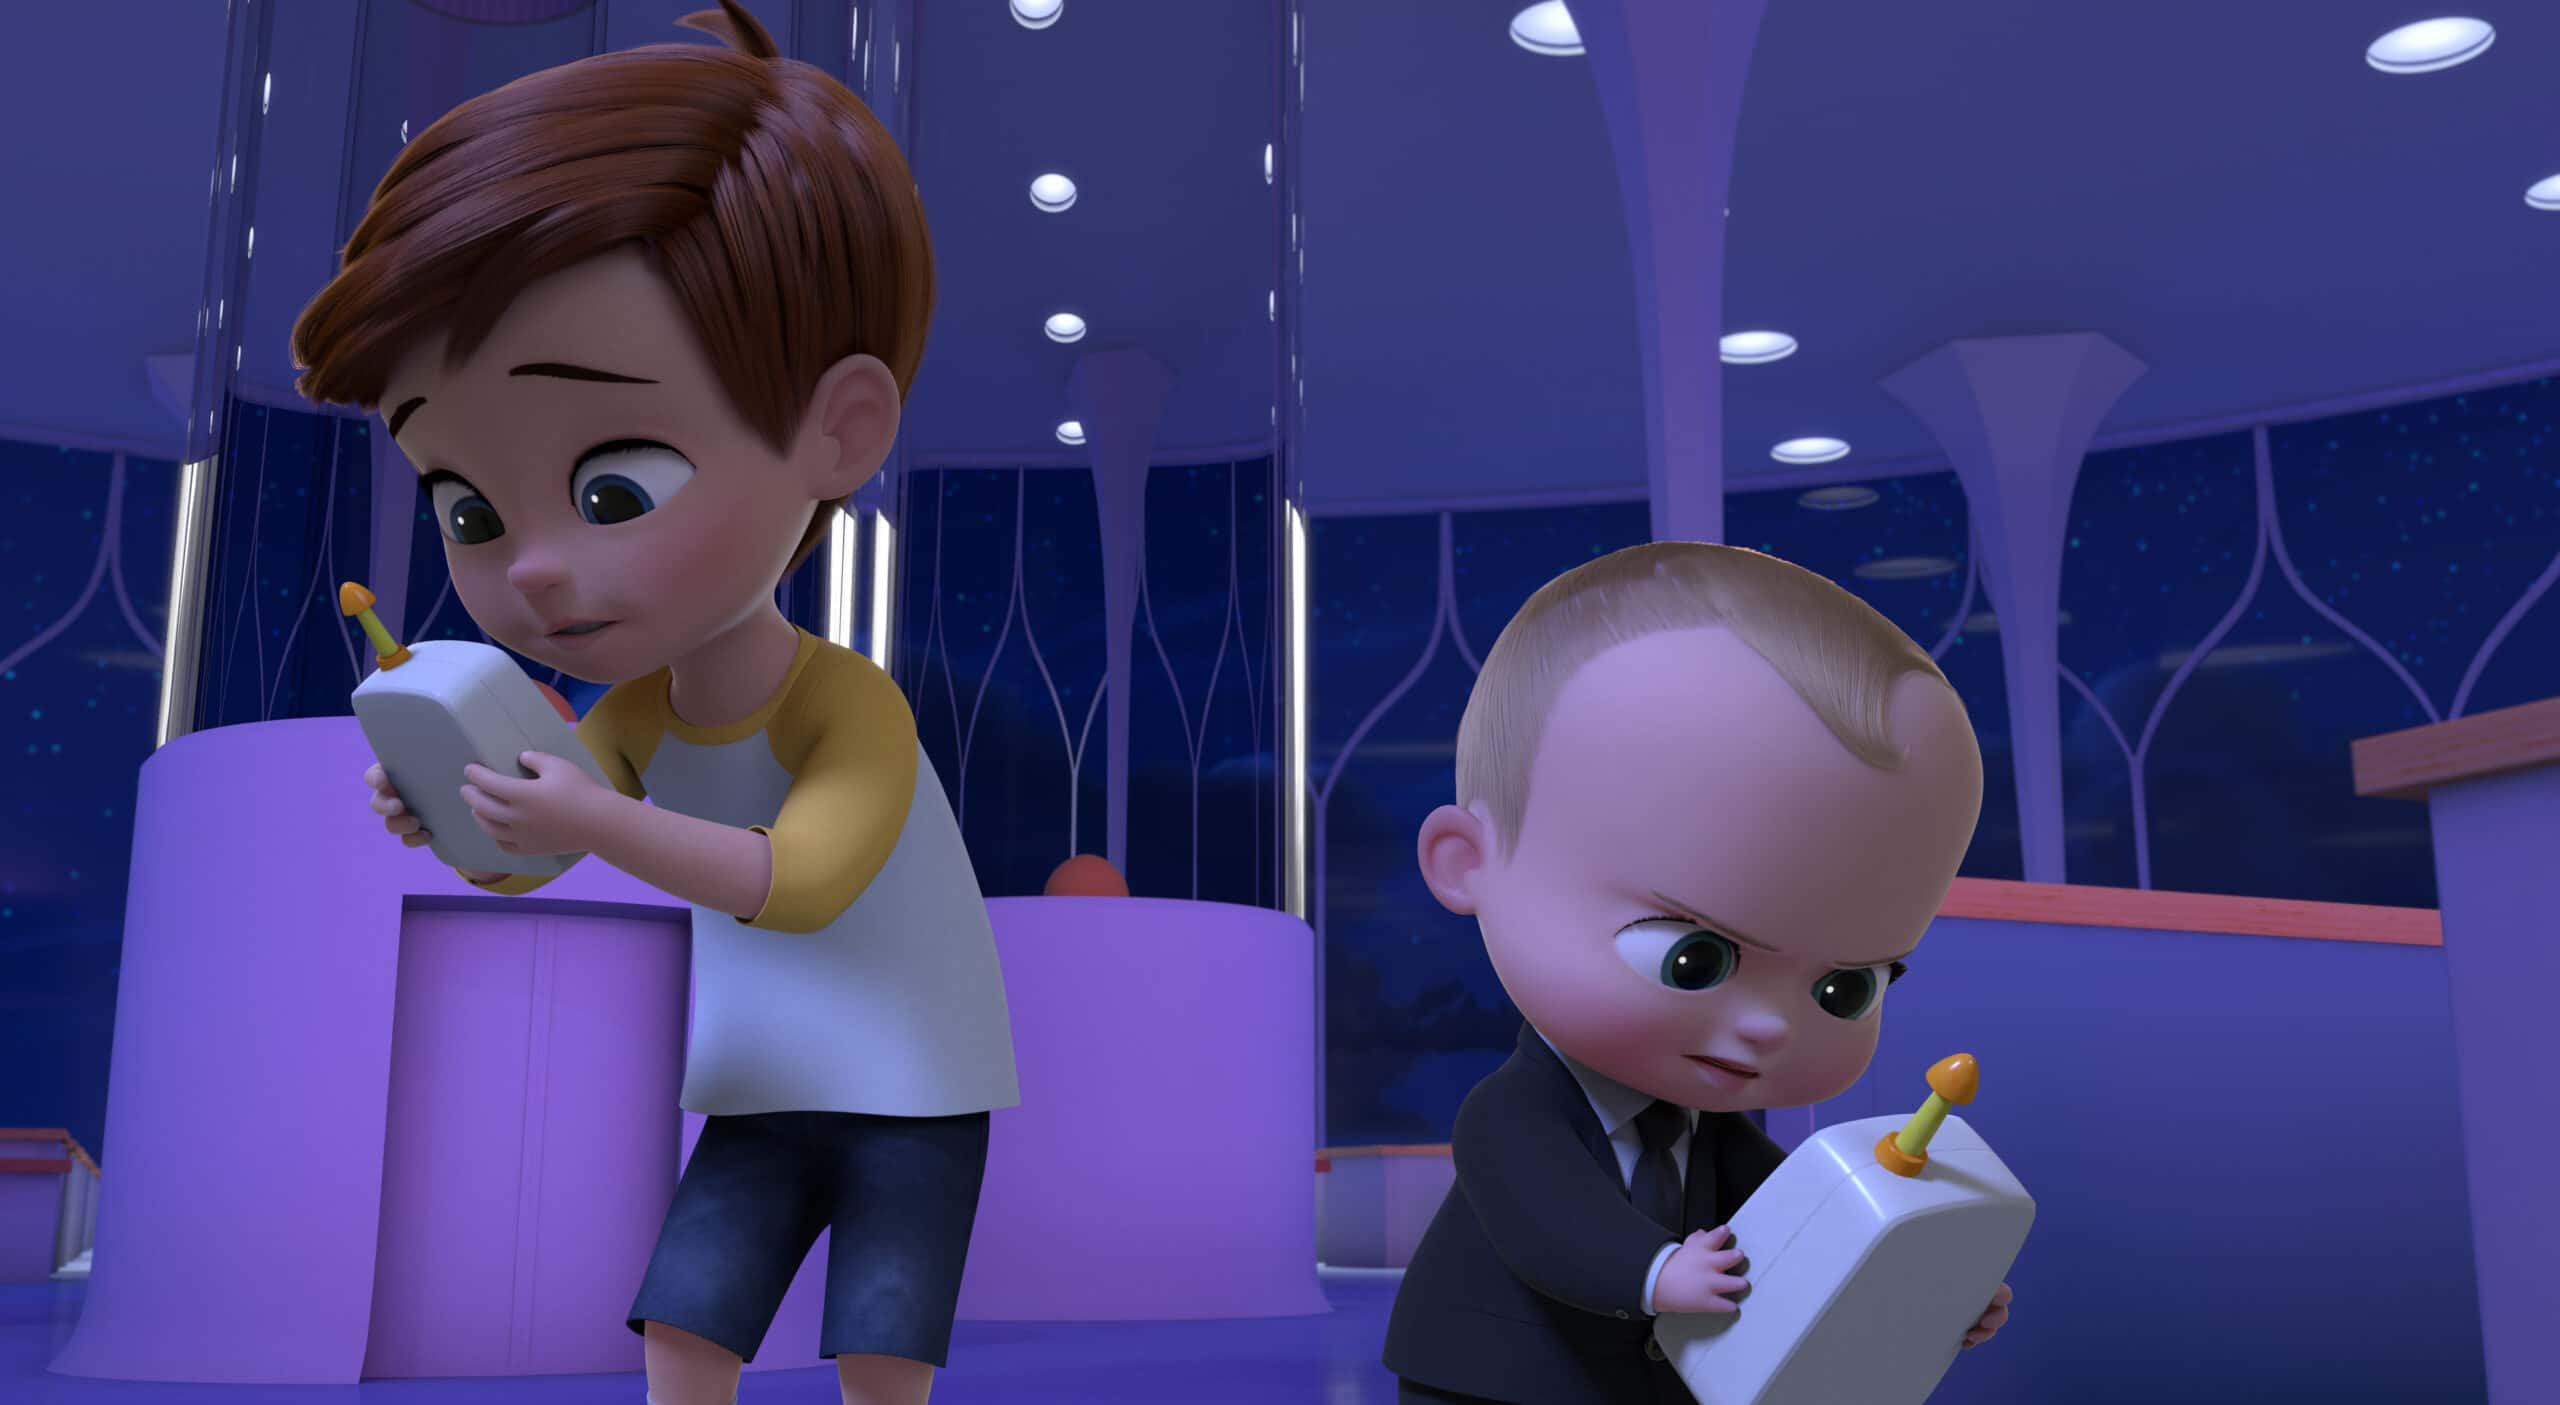 Tim and Boss Baby DreamWorks The Boss Baby: Get That Baby!. Welcome to the Baby Corp Job Simulator! Through a series of interactive (and hilarious) choices, you will fight off Boss Baby's villains, save Baby Corp, and discover the perfect position for the company's newest recruit: you! DreamWorks The Boss Baby Get That Baby! interactive special comes to Netflix on September 1st.